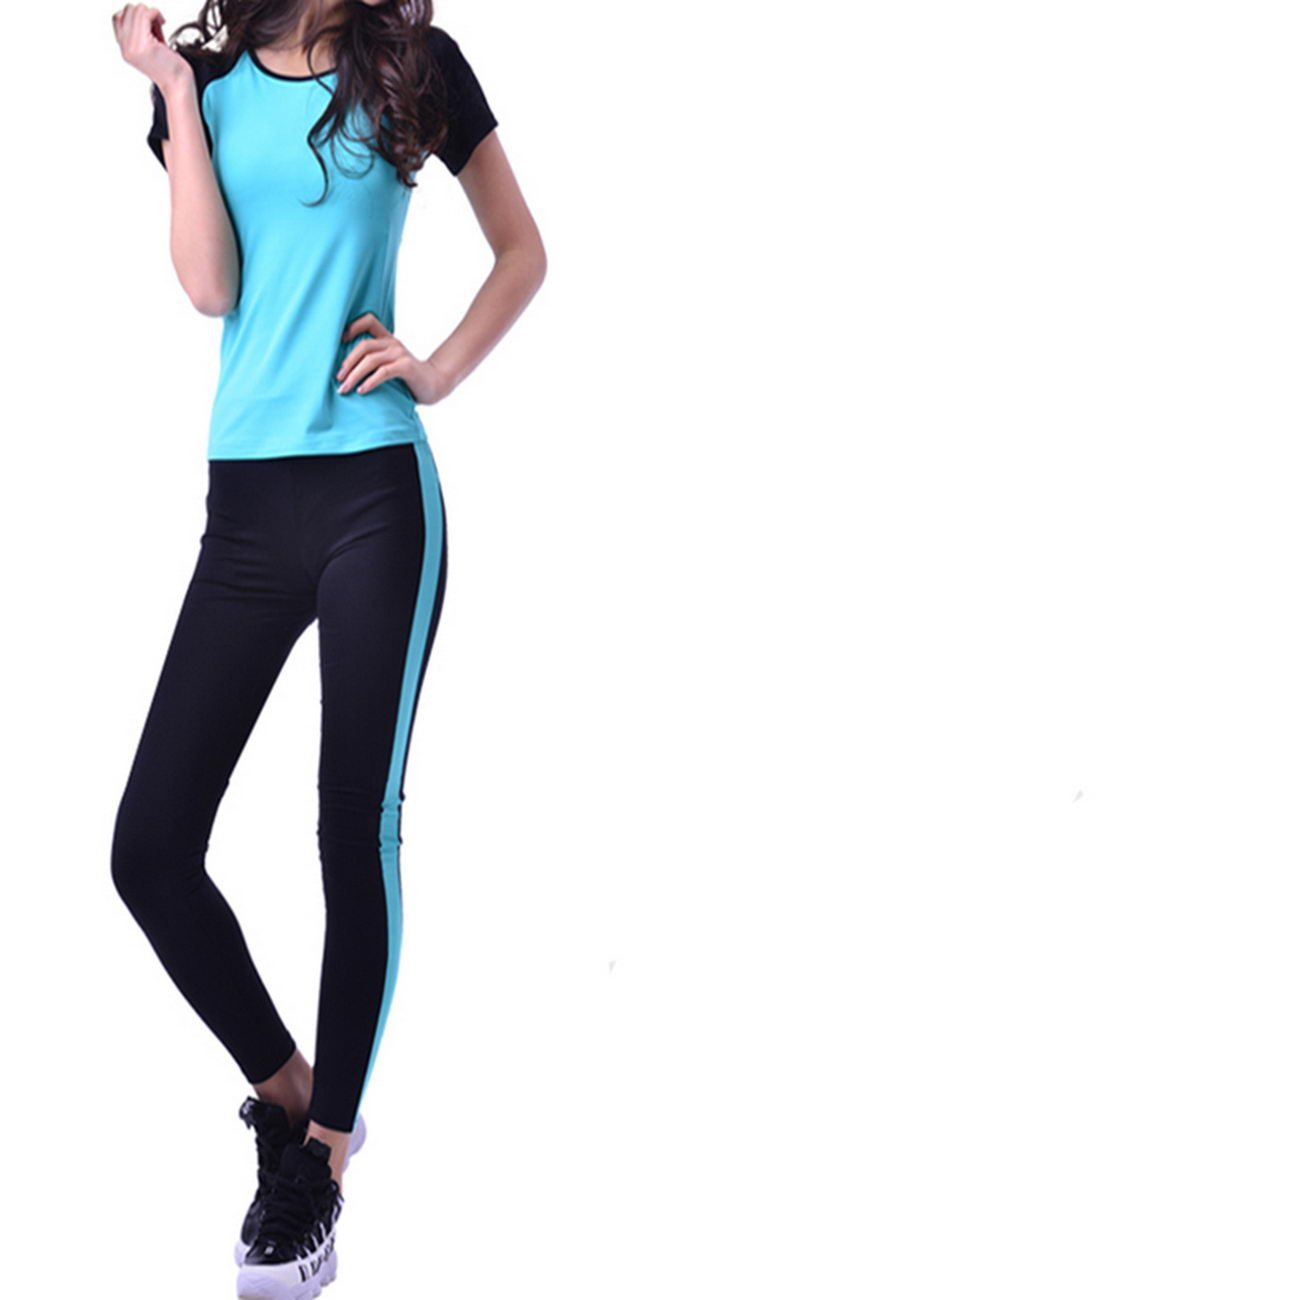 WENXINJIA Nylon, sports, suits, women, spring and summer, yoga clothes, suits, thin running fitness clothing yoga clothing. , Suits yoga clothes suit was thin yoga clothes suit yoga clothes -01